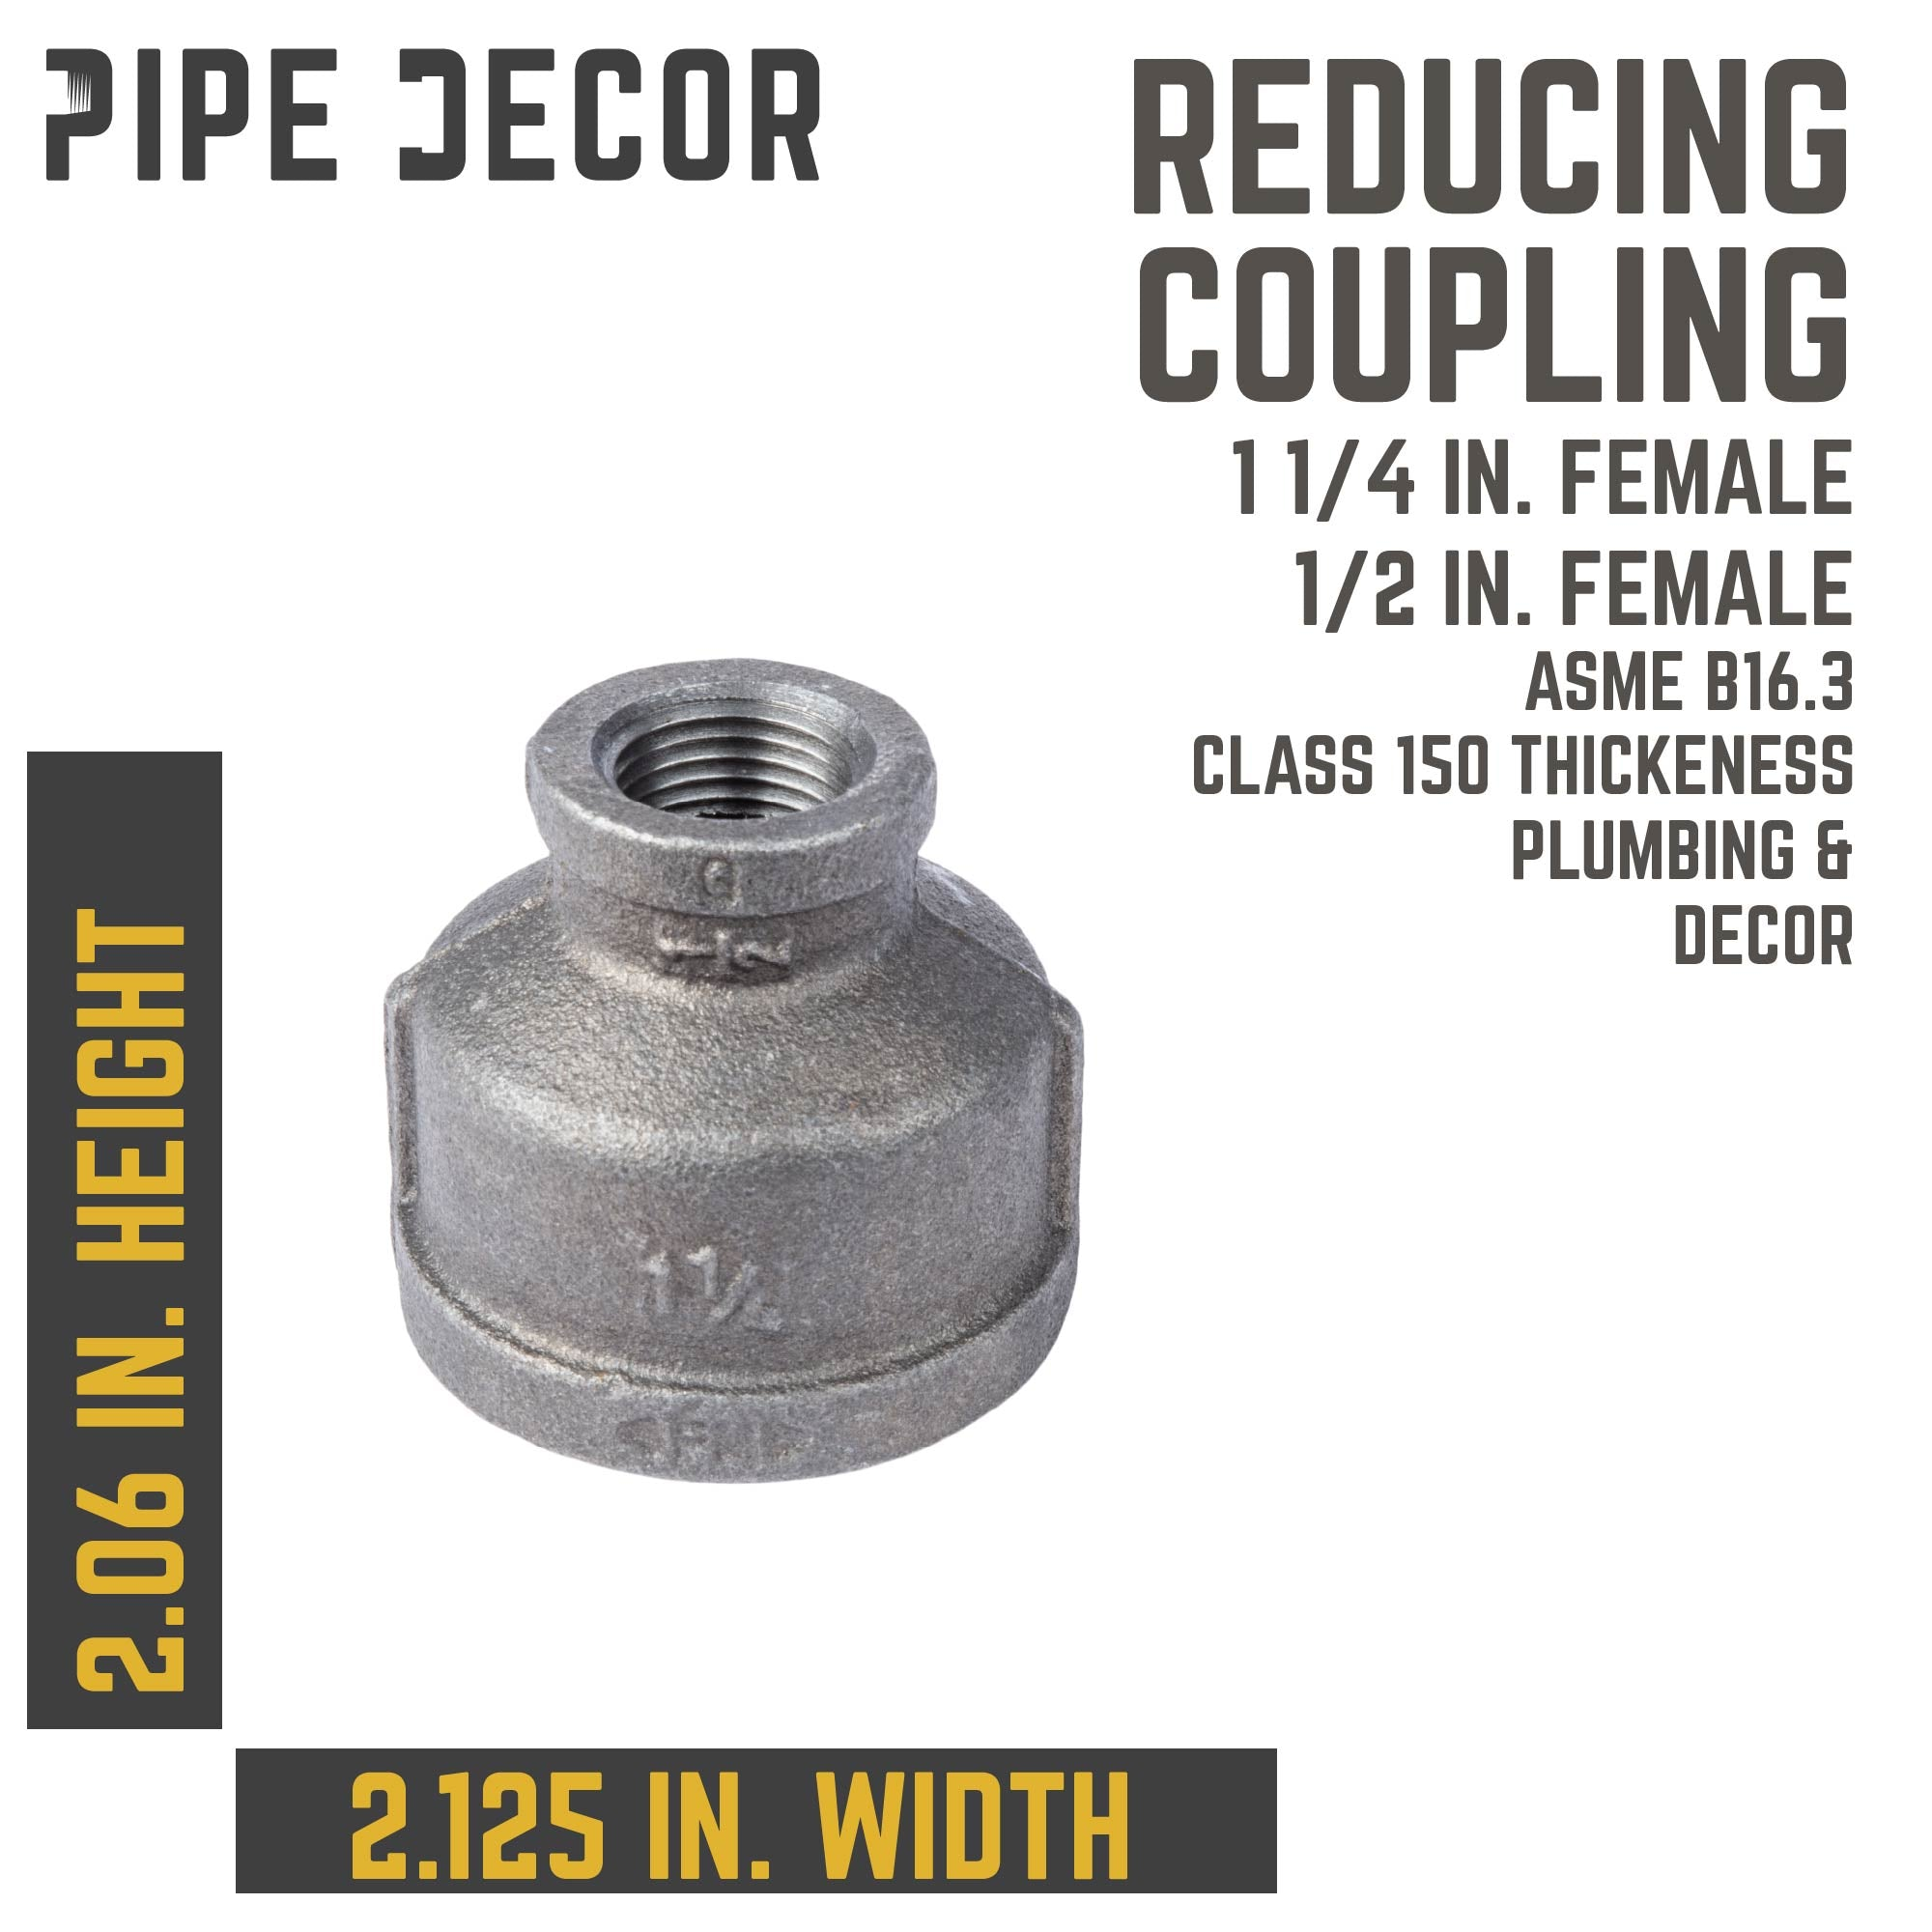 1 1/4 in. X 1/2 in. Black Reducing Coupling